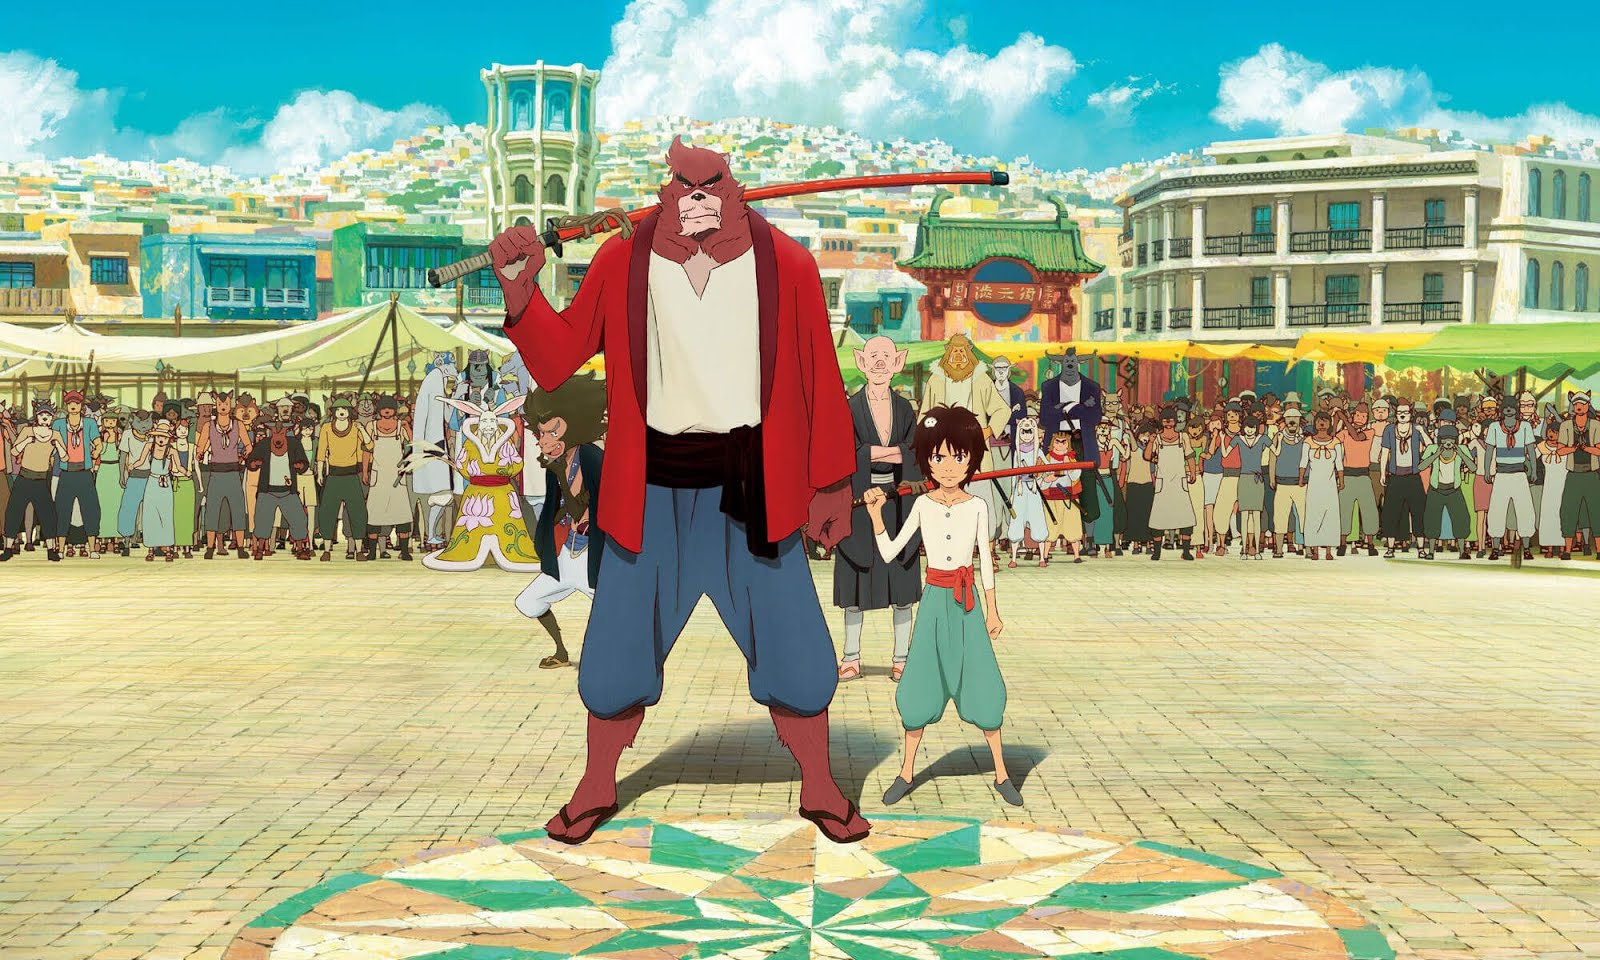 Sensei and pupil - the beast Kumatetsu and his human ward Ren/Kyuta in The Boy and the Beast (2015)